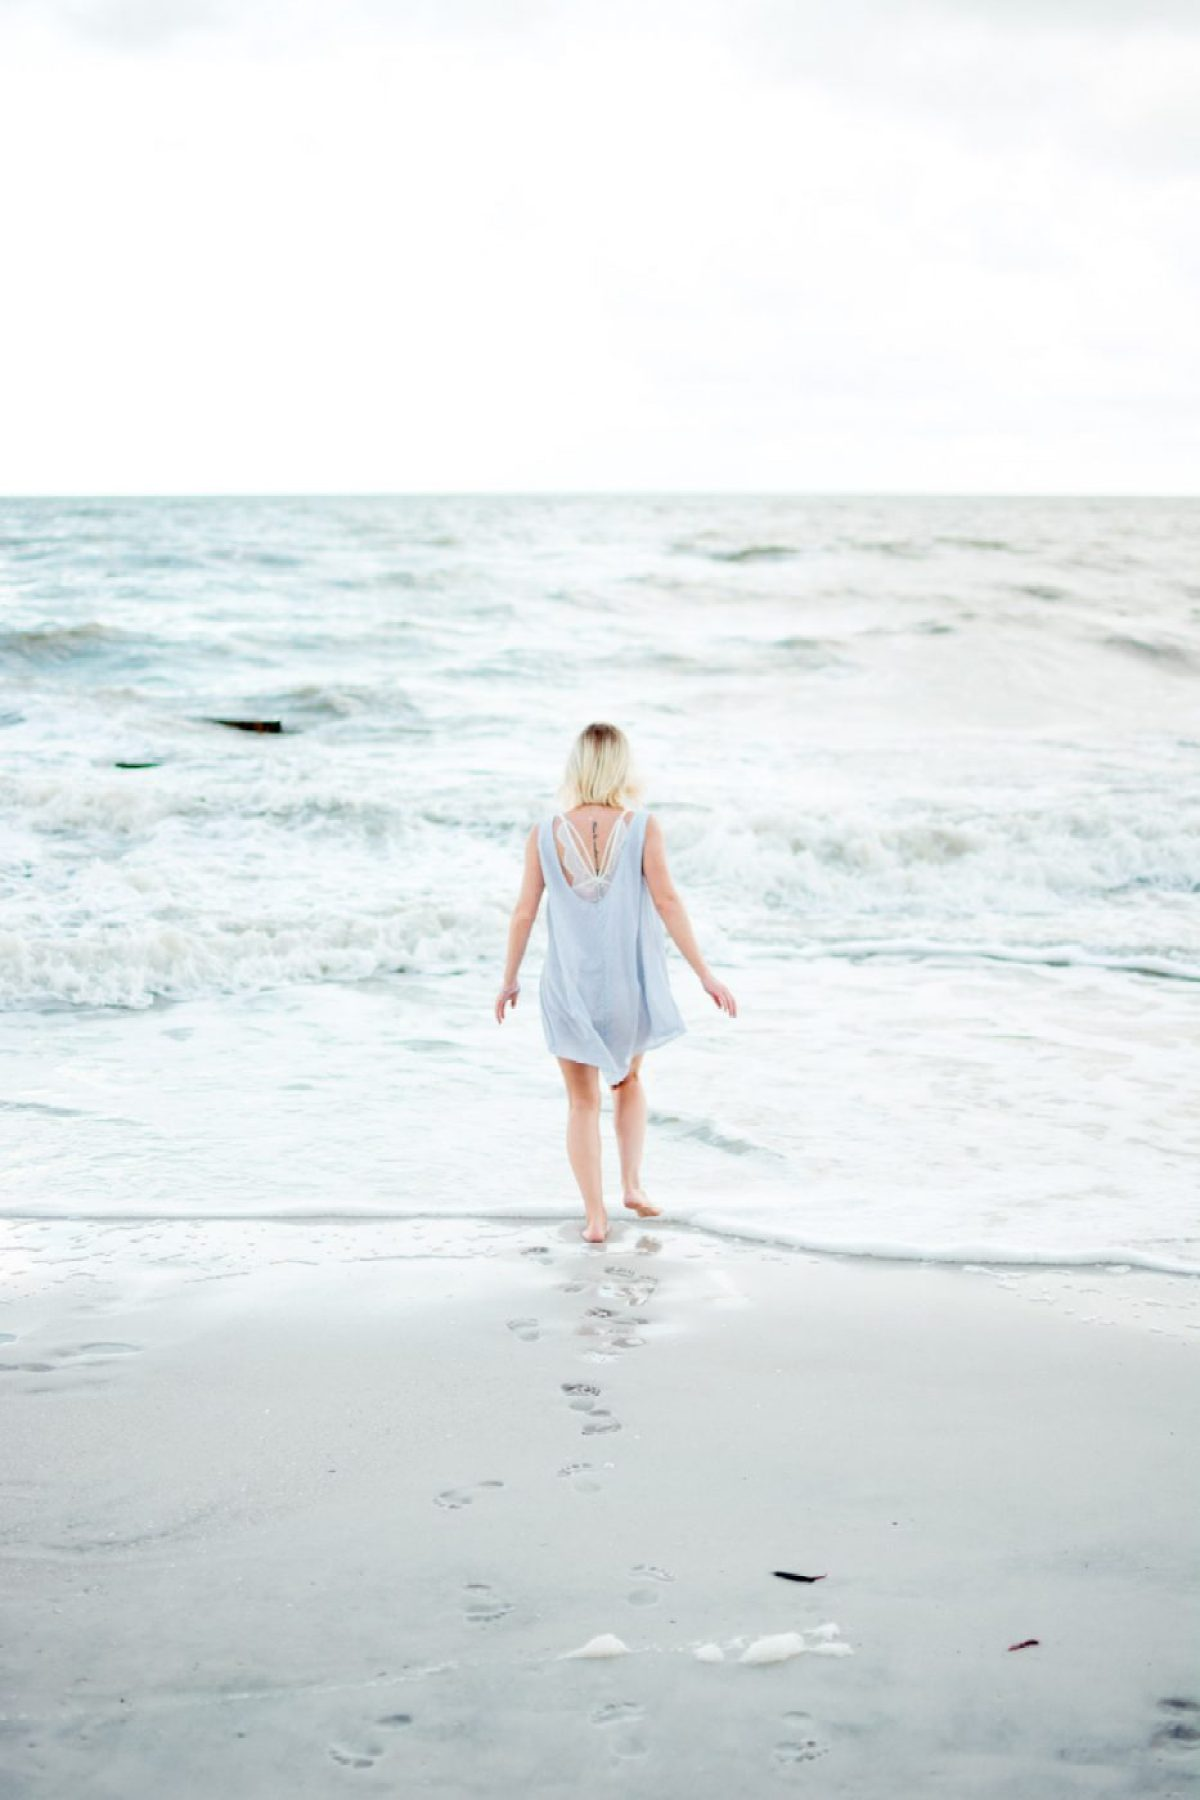 Cotton dress on the beach worn by Jenny - Sweet Teal